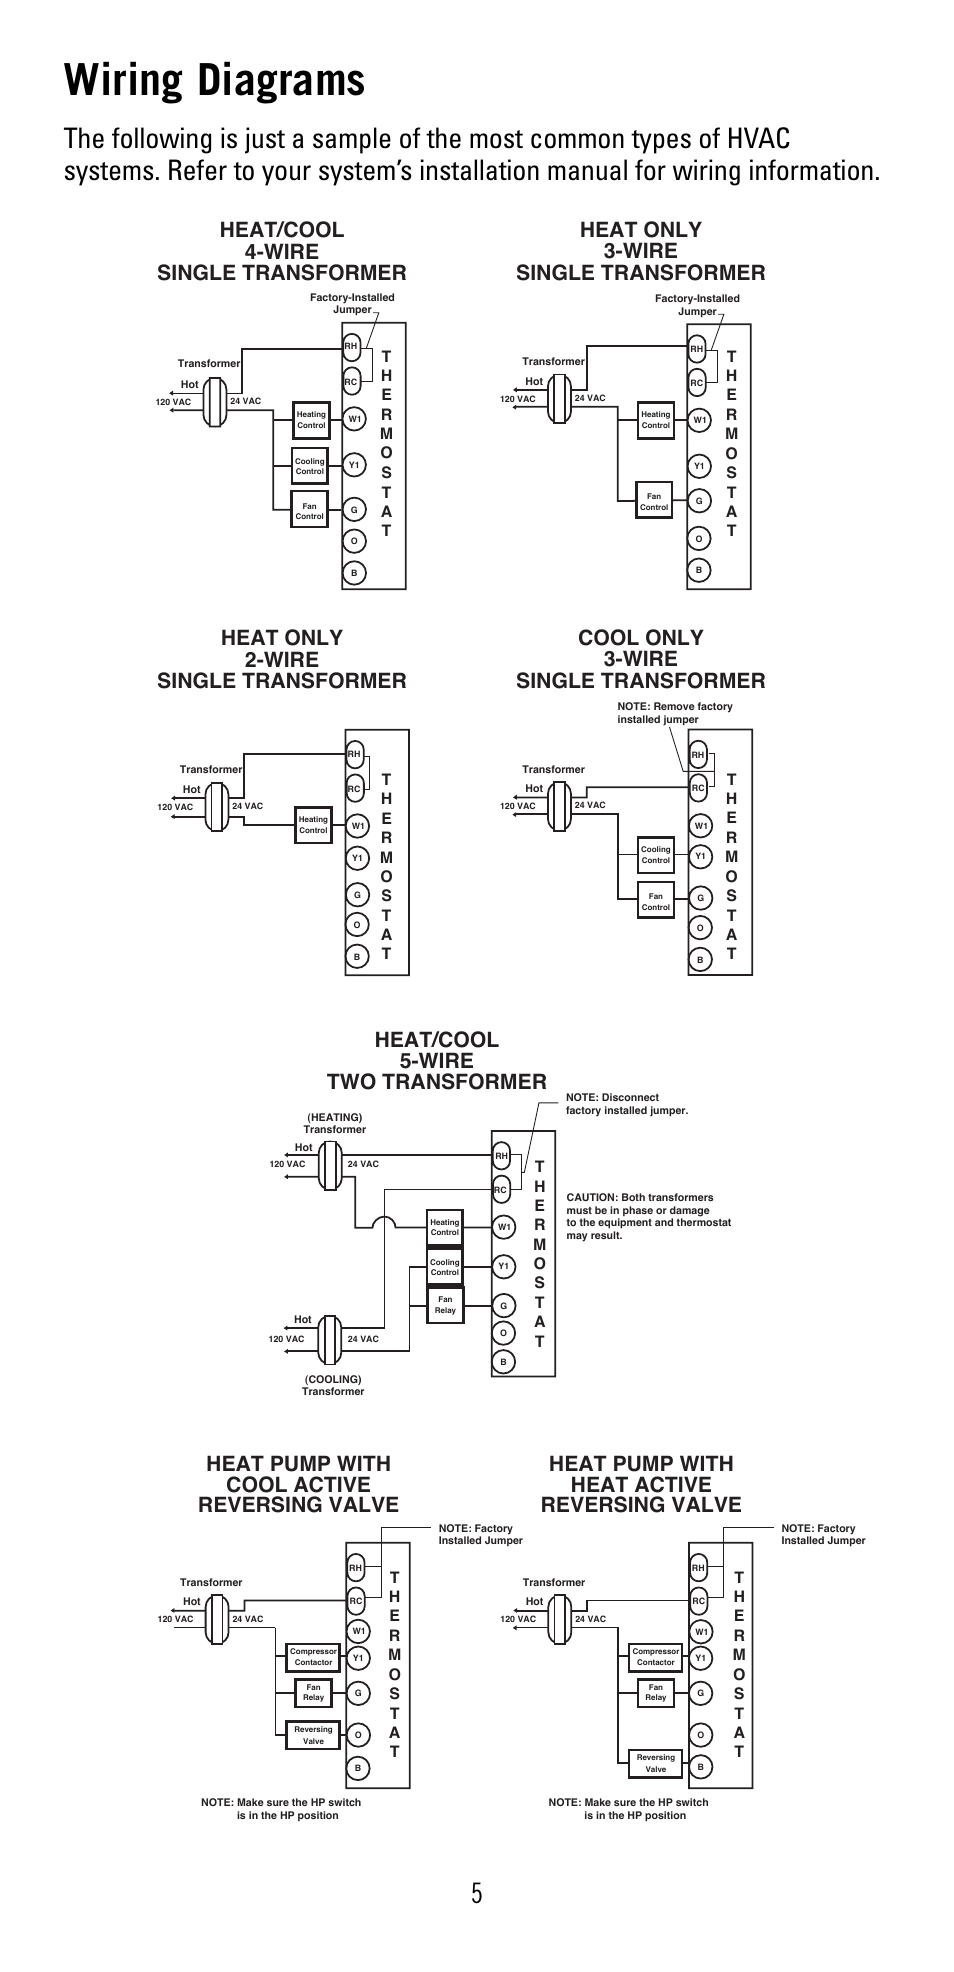 wiring diagrams, cool only 3-wire single transformer, heat/cool 5-wire two  transformer | robertshaw 8600 user manual | page 5 / 12